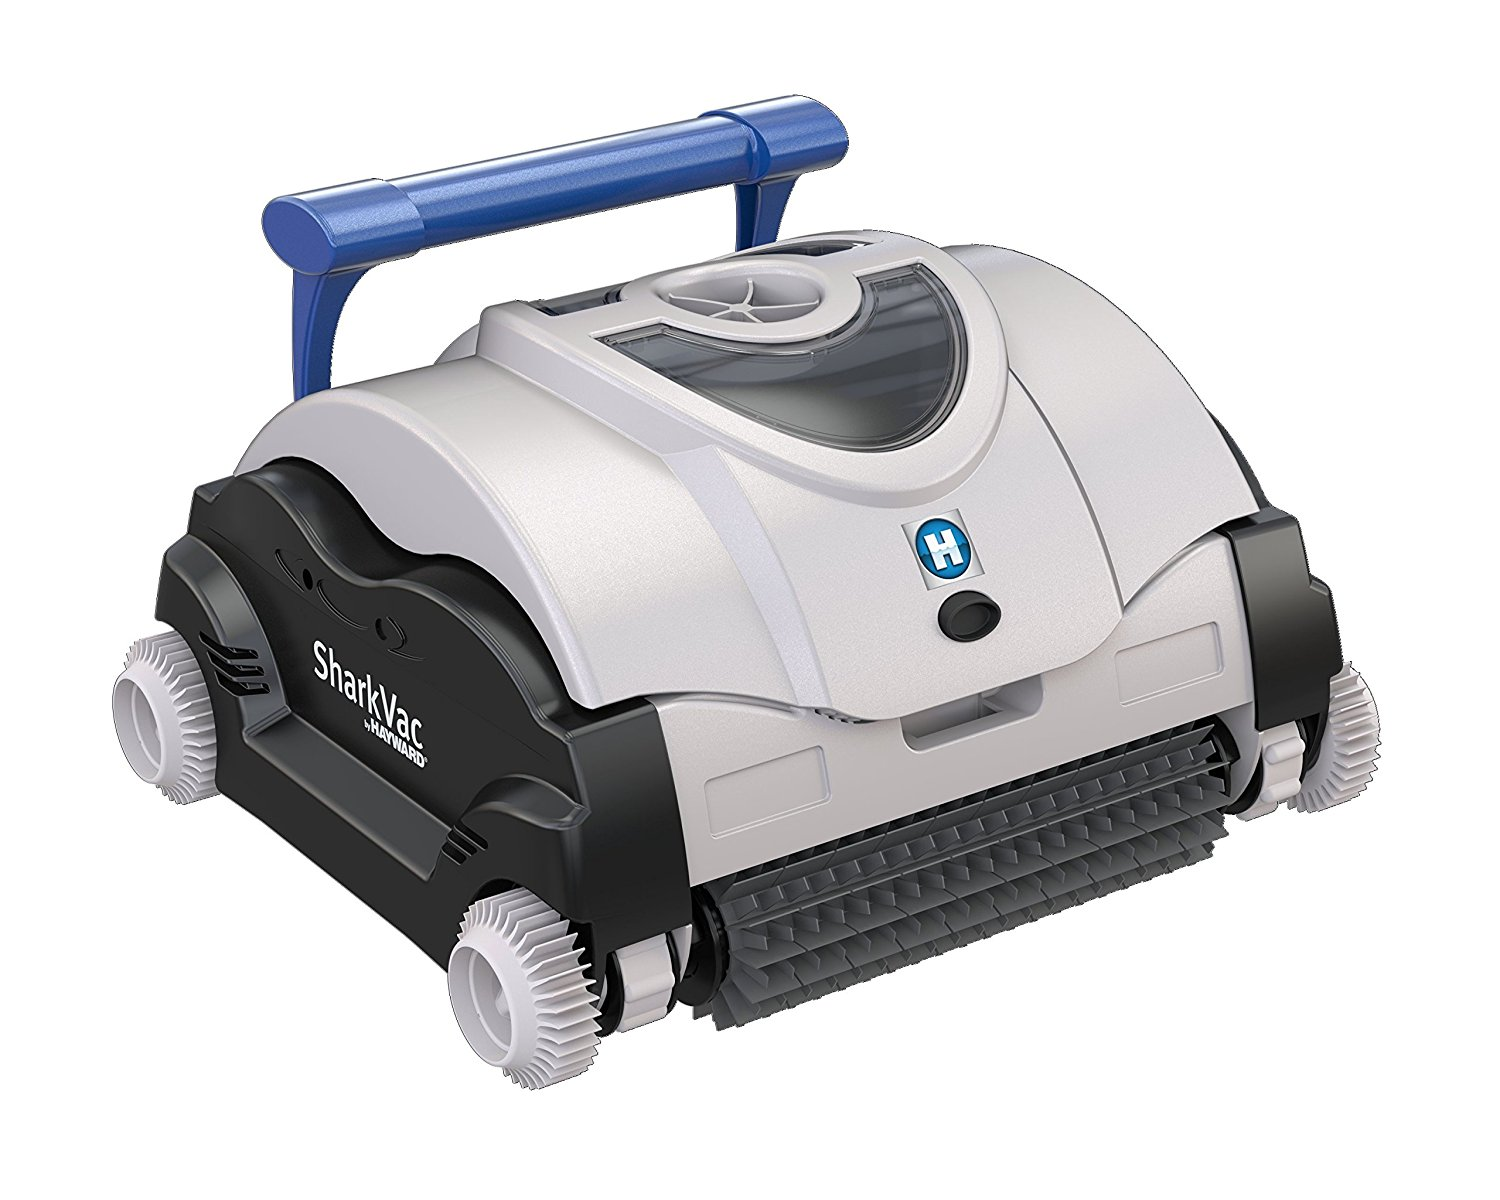 Hayward RC9740CUB SharkVac Robotic Pool Cleaner